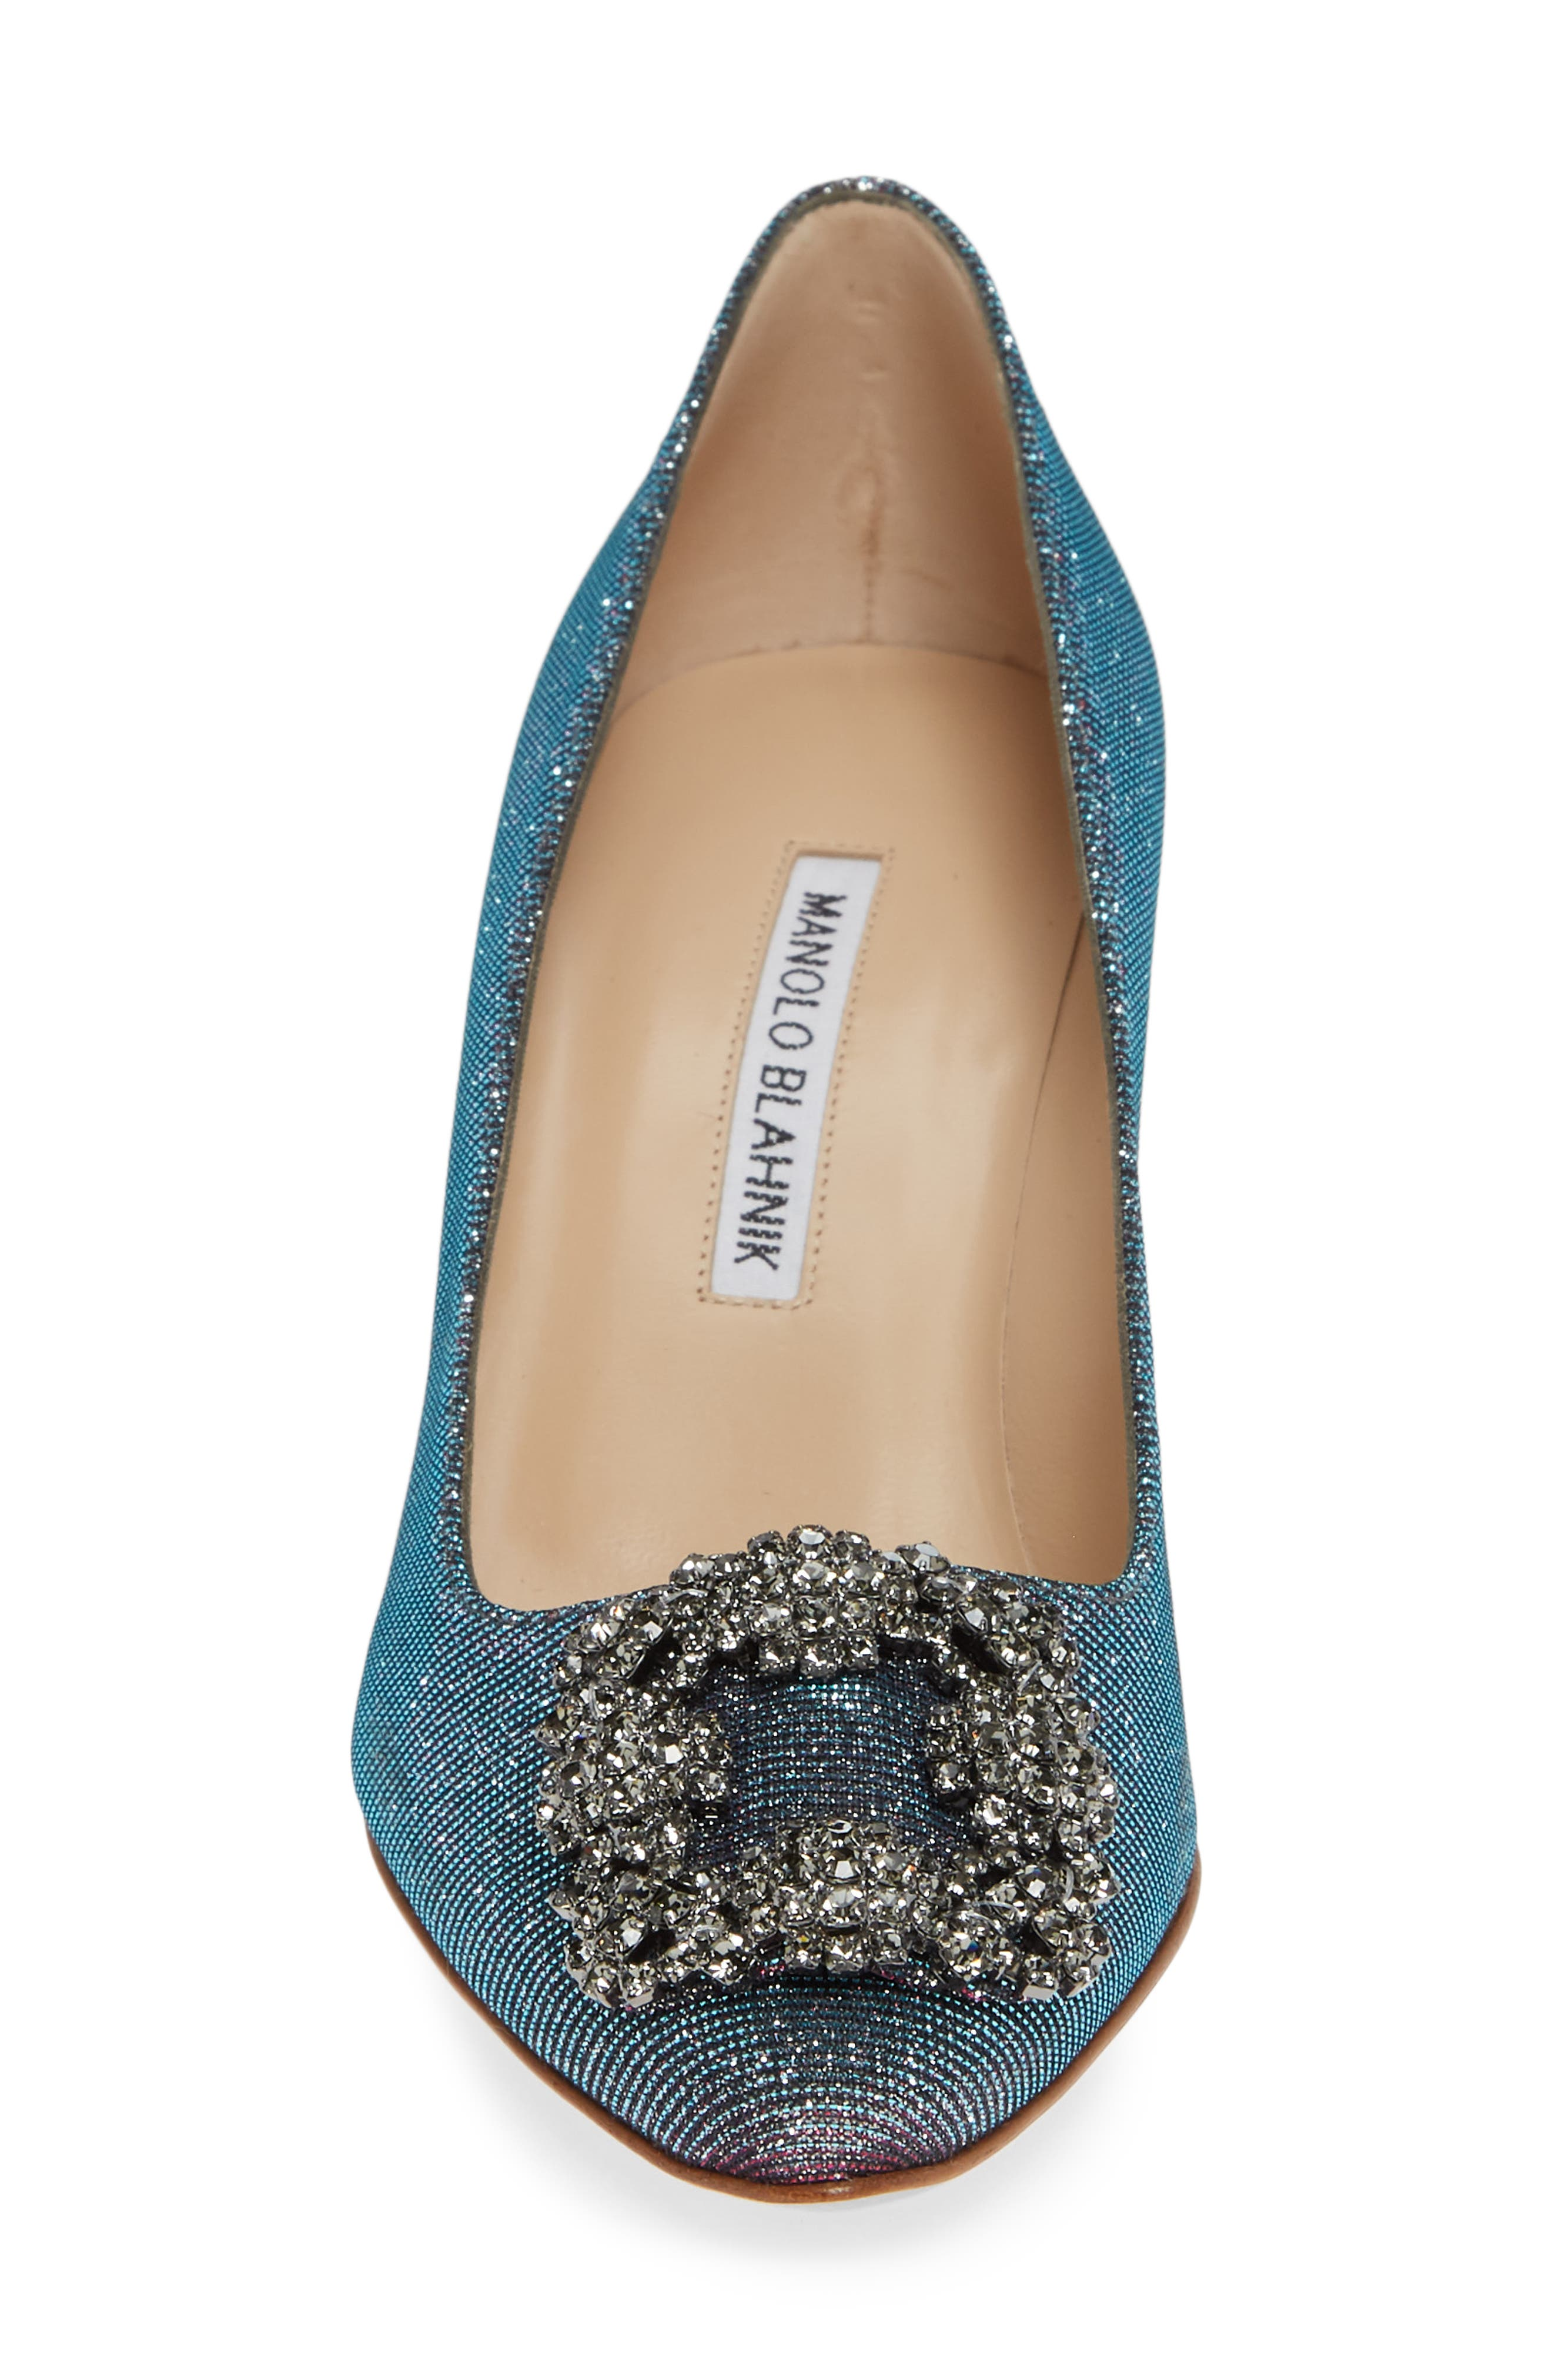 MANOLO BLAHNIK, Hangisi Pump, Alternate thumbnail 4, color, MIDNIGHT BLUE